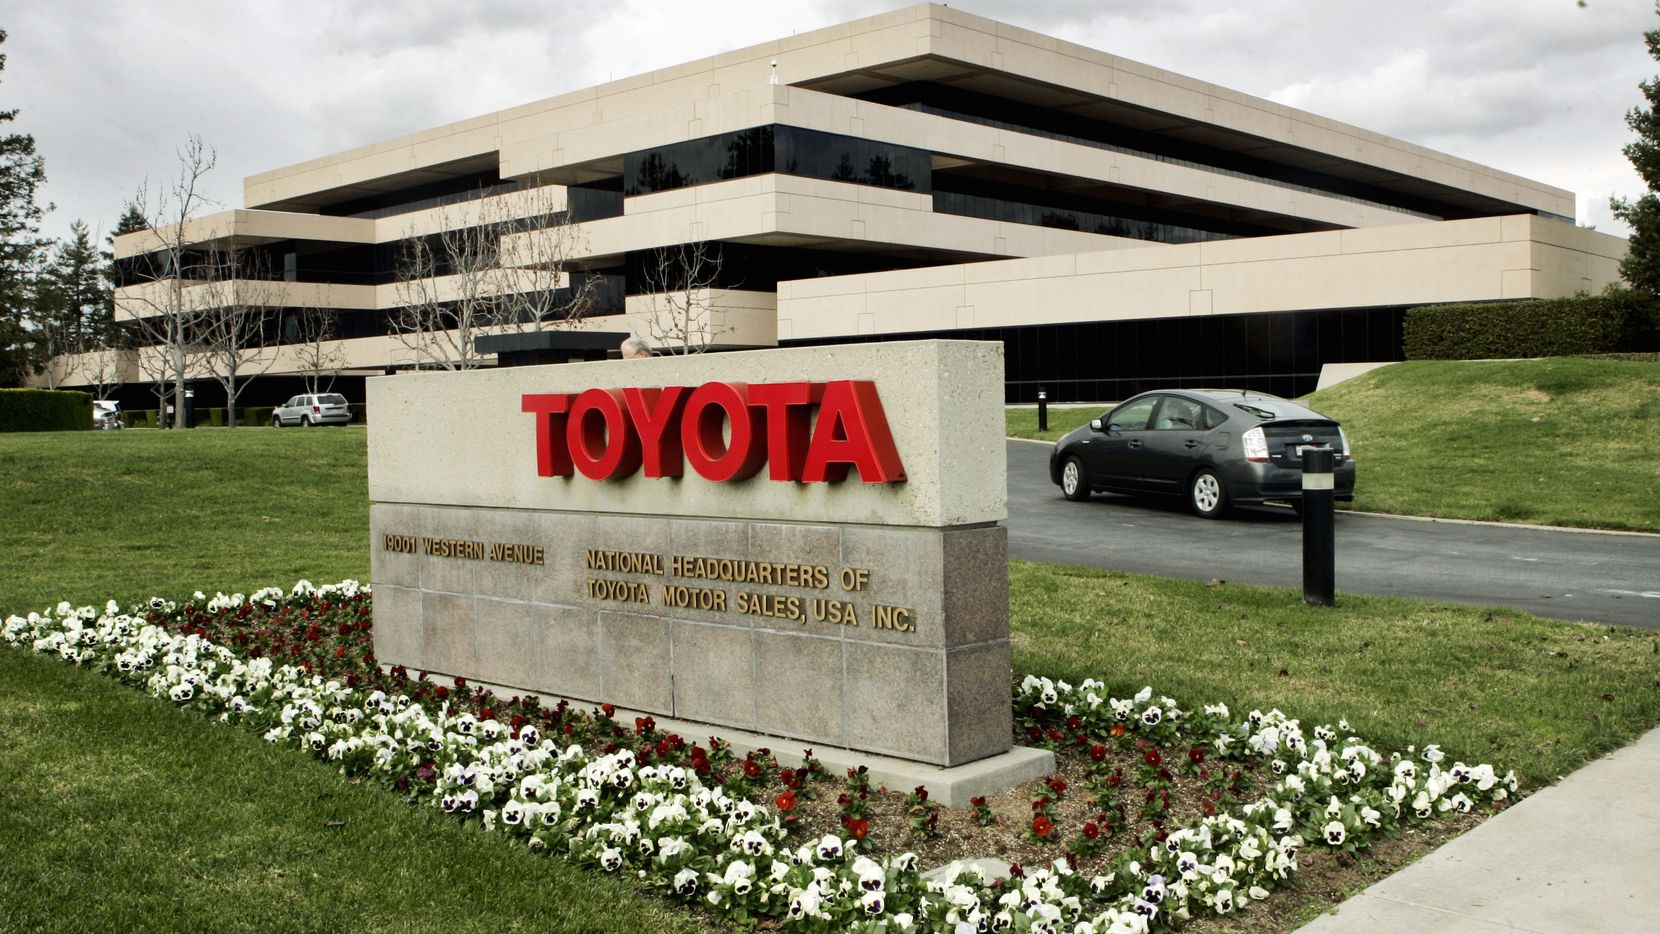 Toyota has sold its former North American headquarters to a California real estate investor.